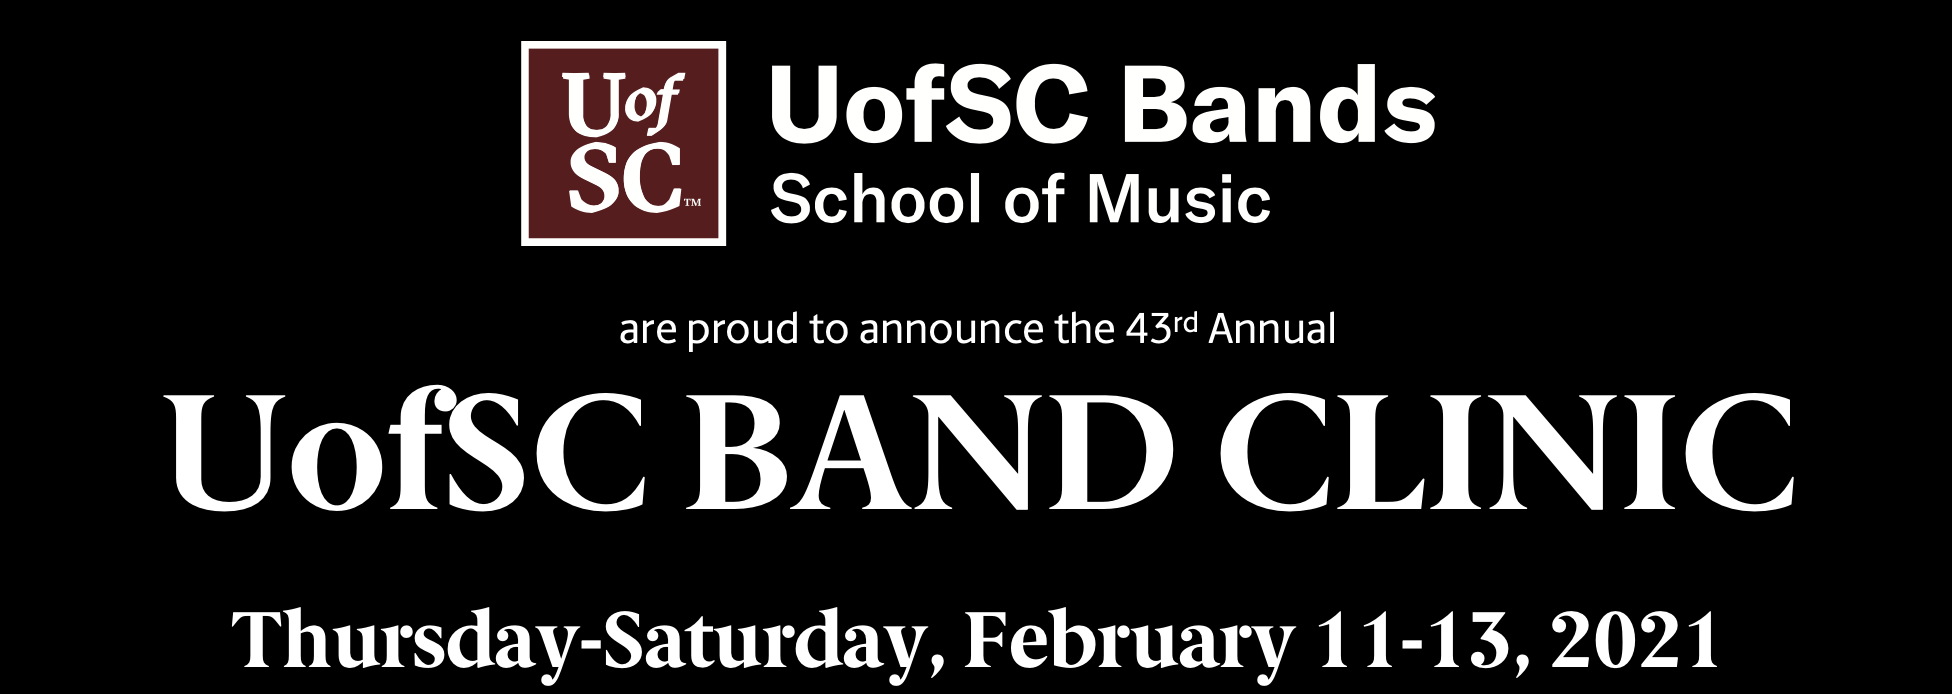 UofSC Band Clinic Information Banner